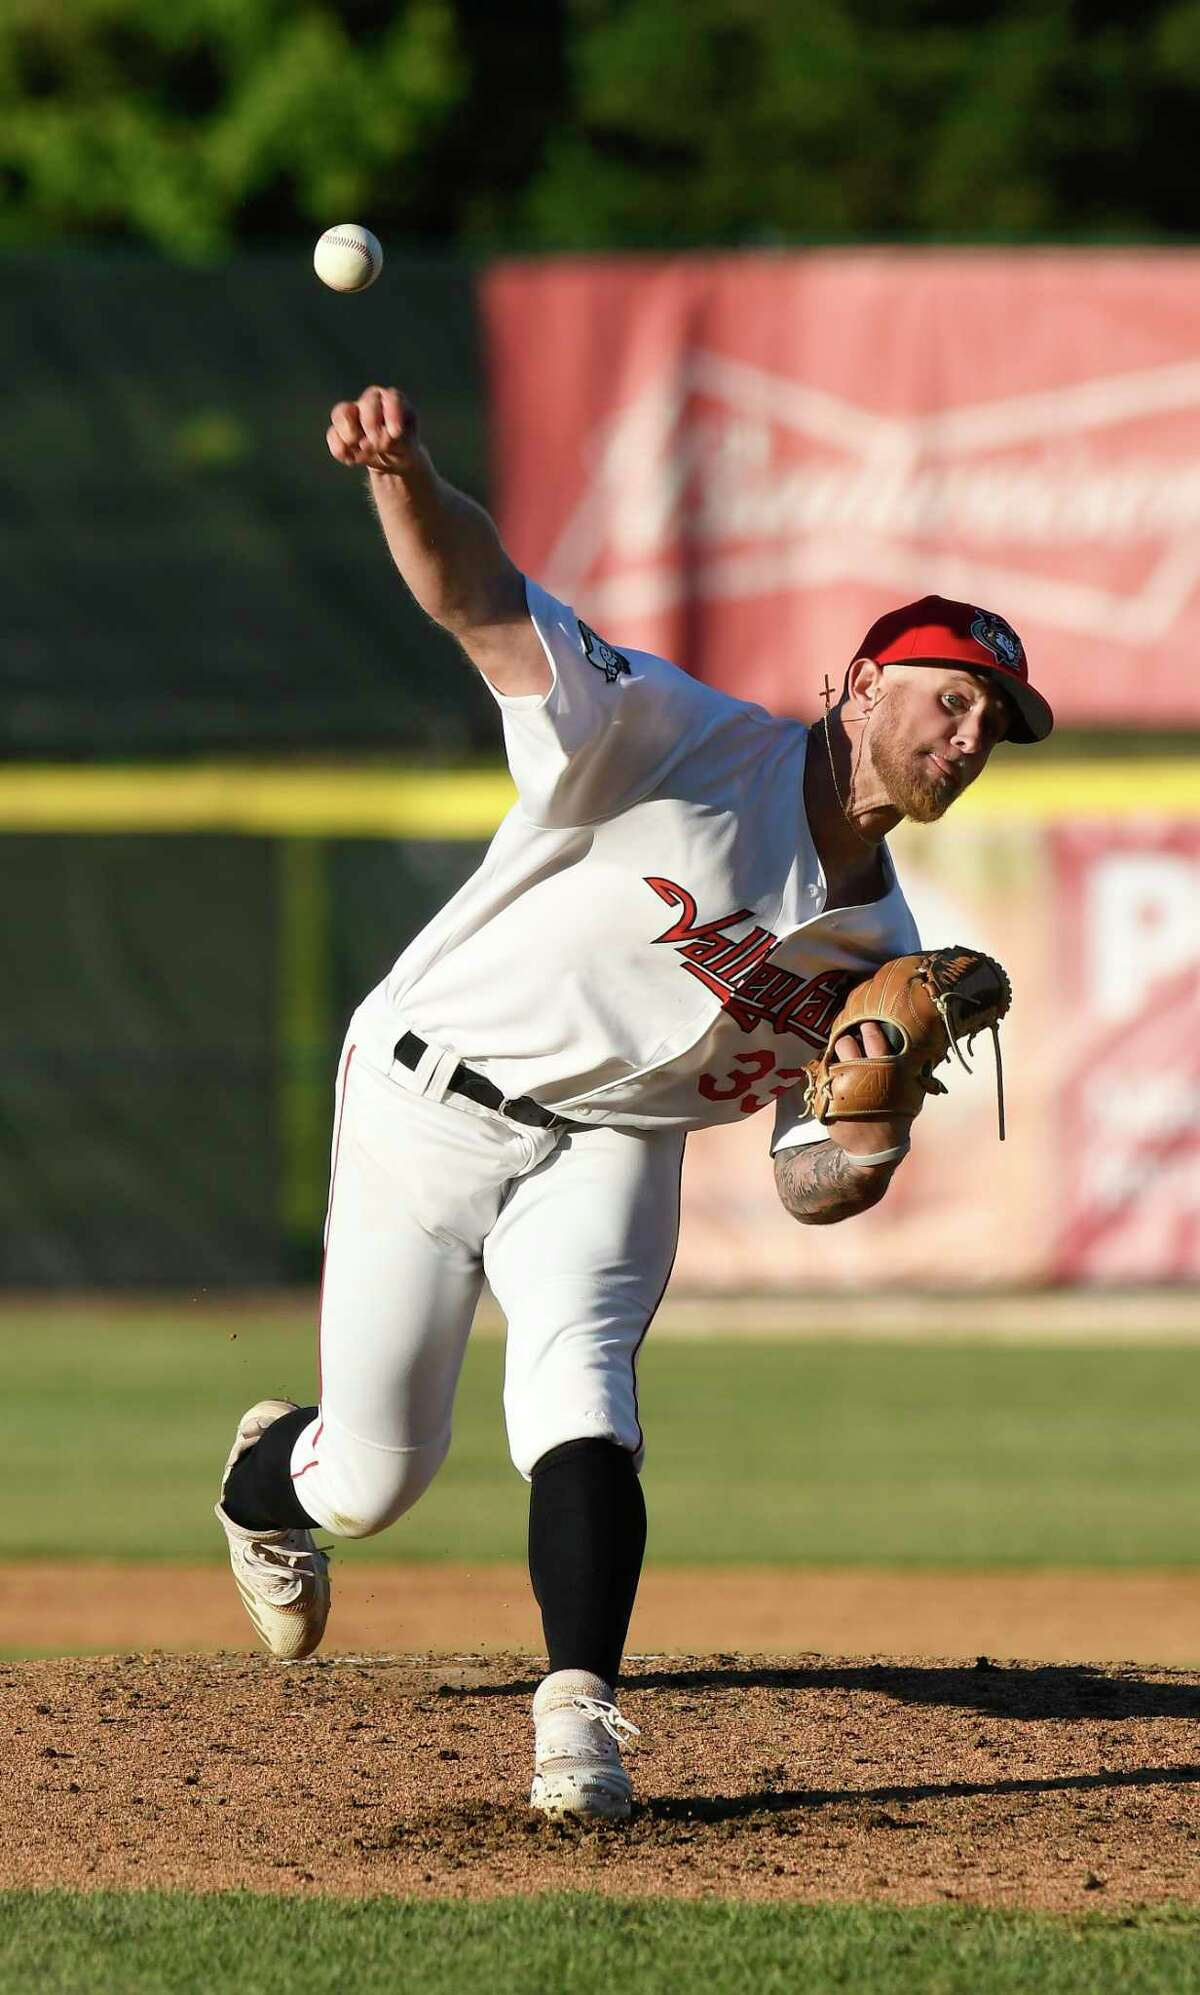 Tri-City ValleyCats pitcher Austin Cline (33) delivers a pitch against the Sussex County Miners during a minor league baseball game in Troy, N.Y., Wednesday, June 23, 2021. (Hans Pennink / Special to the Times Union) ORG XMIT: 062321_hsfb1_HP118